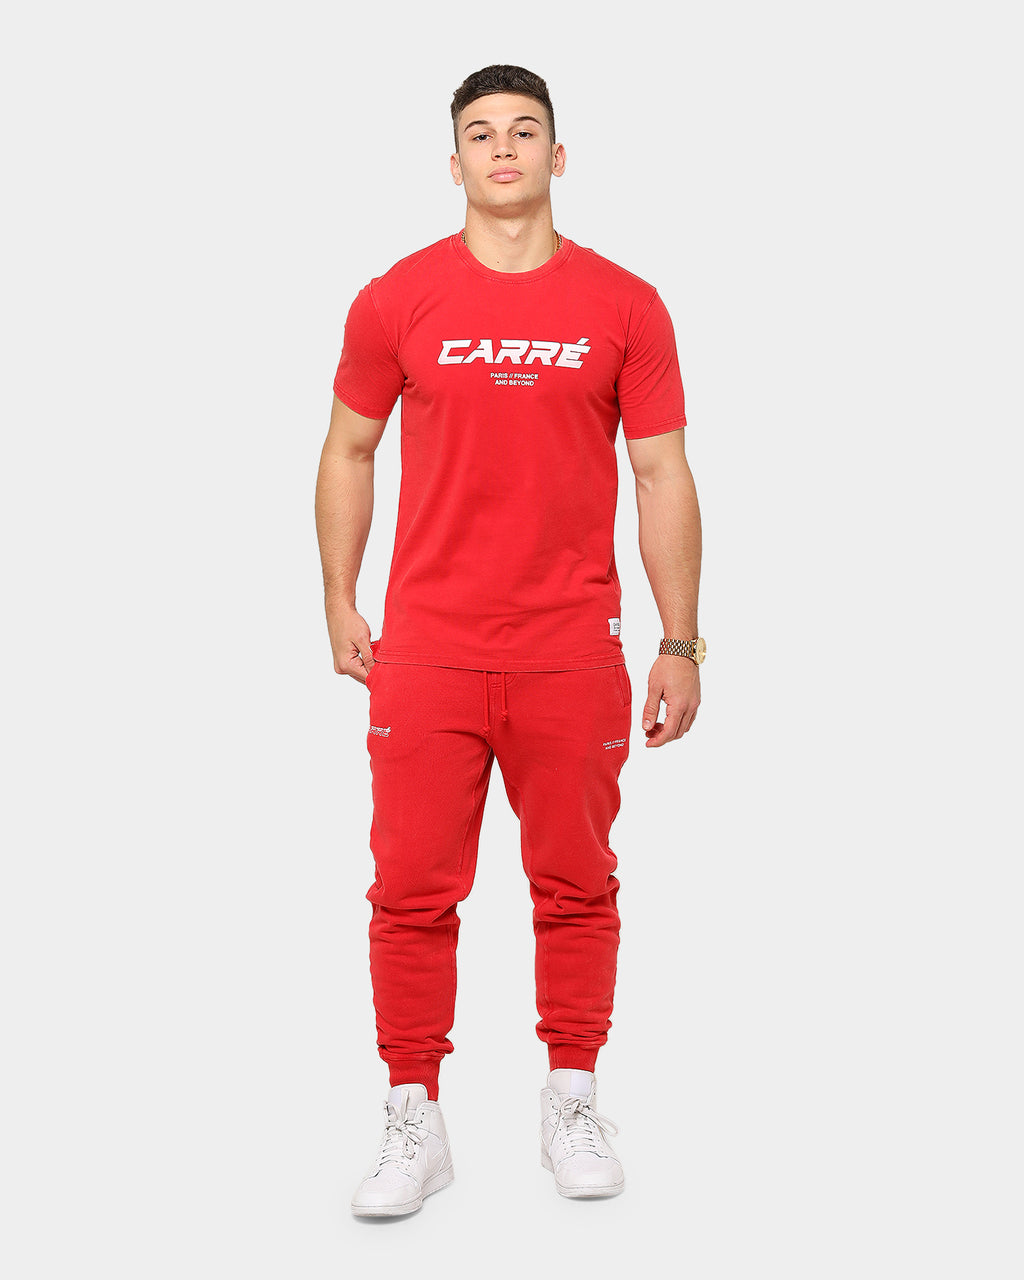 Carré Men's Colorant Classique Vintage Short Sleeve T-Shirt Red